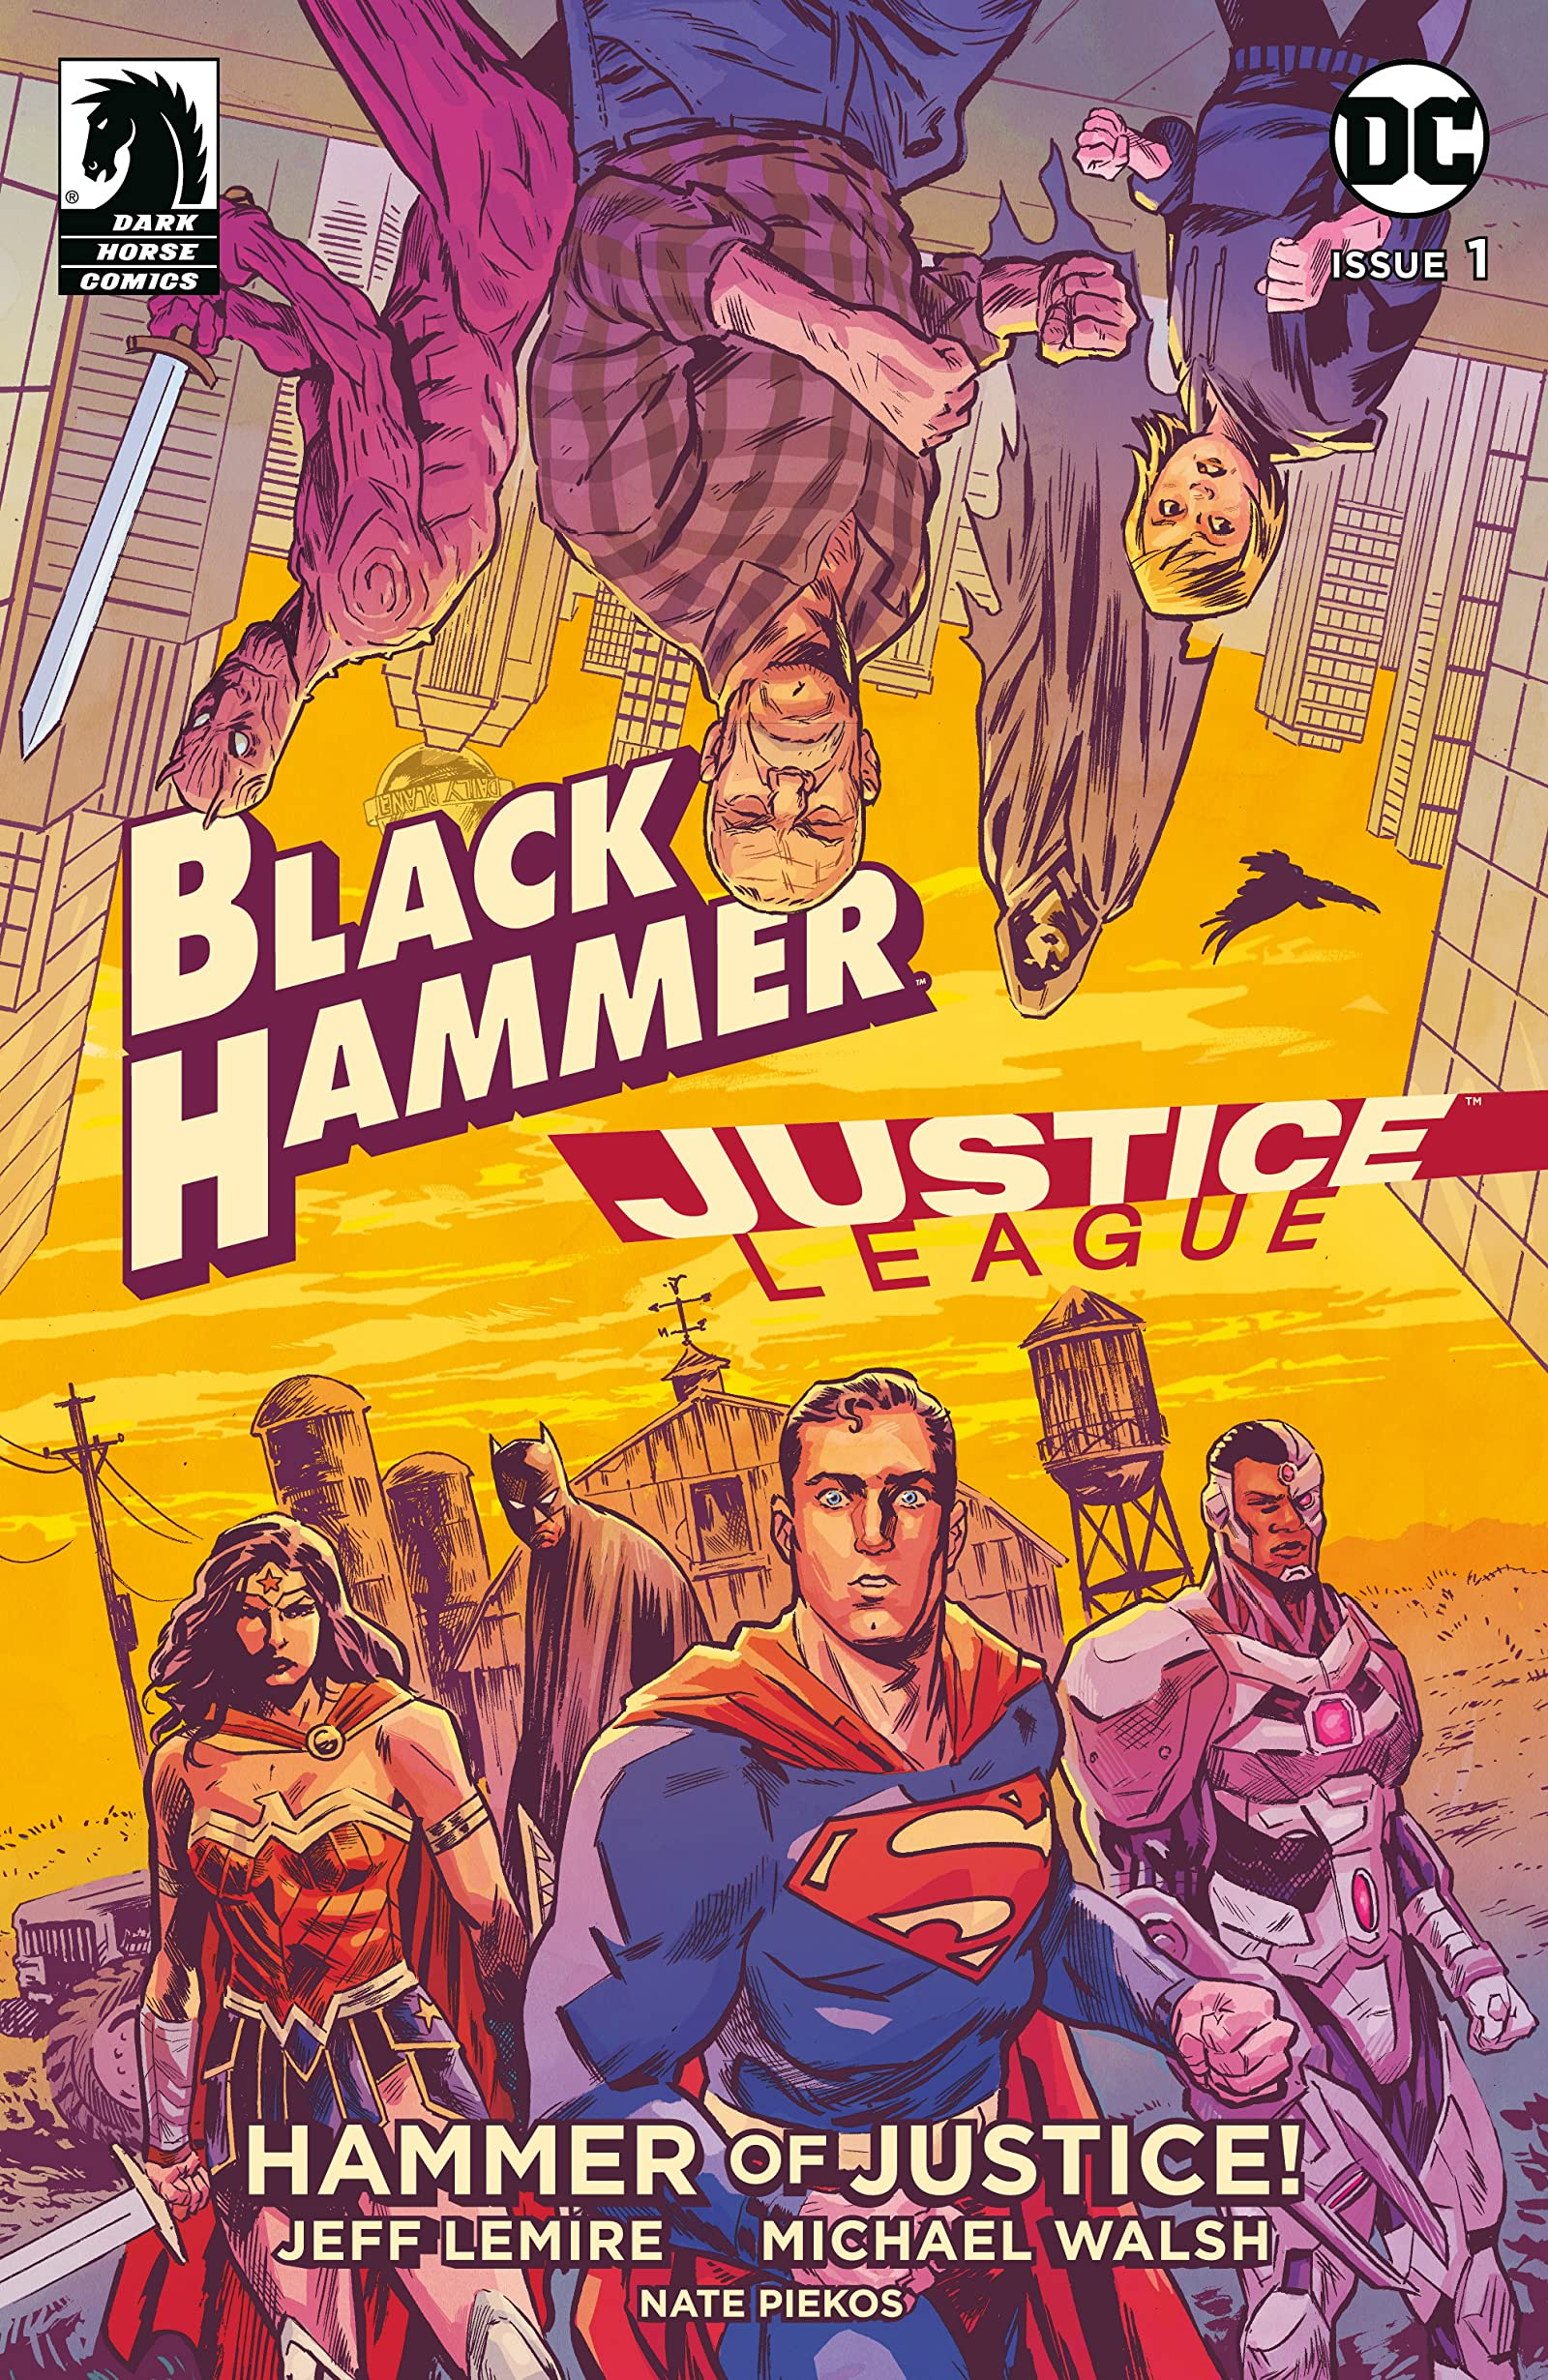 BLACK HAMMER/JUSTICE LEAGUE: HAMMER OF JUSTICE (MS 5)